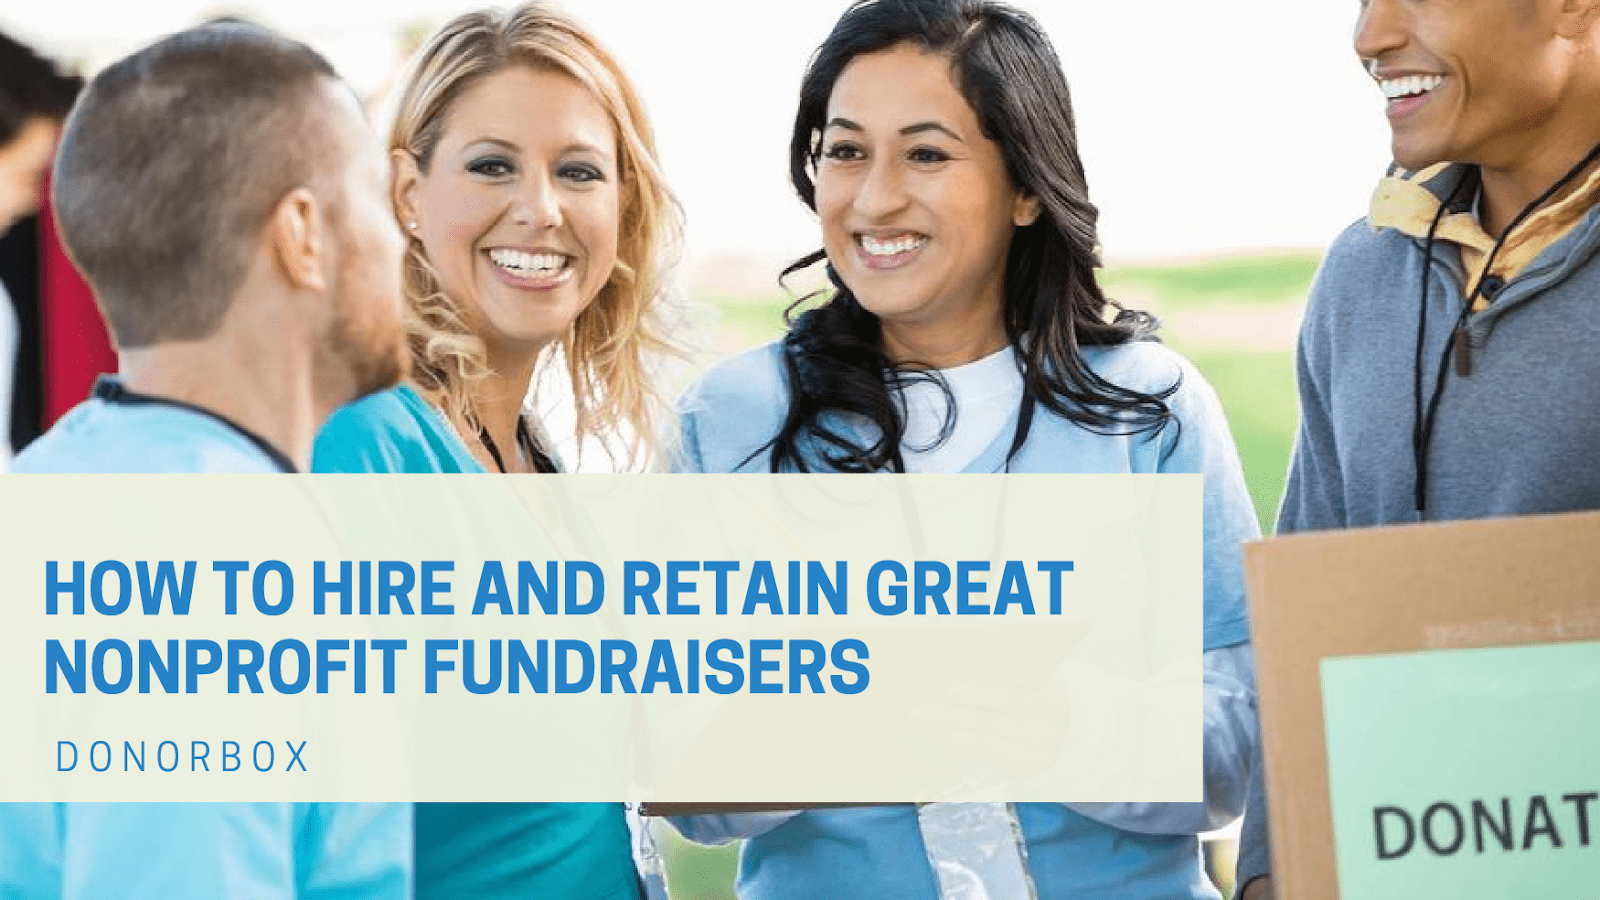 How to Hire and Retain Professional Fundraisers For Your Nonprofit | Step-by-Step